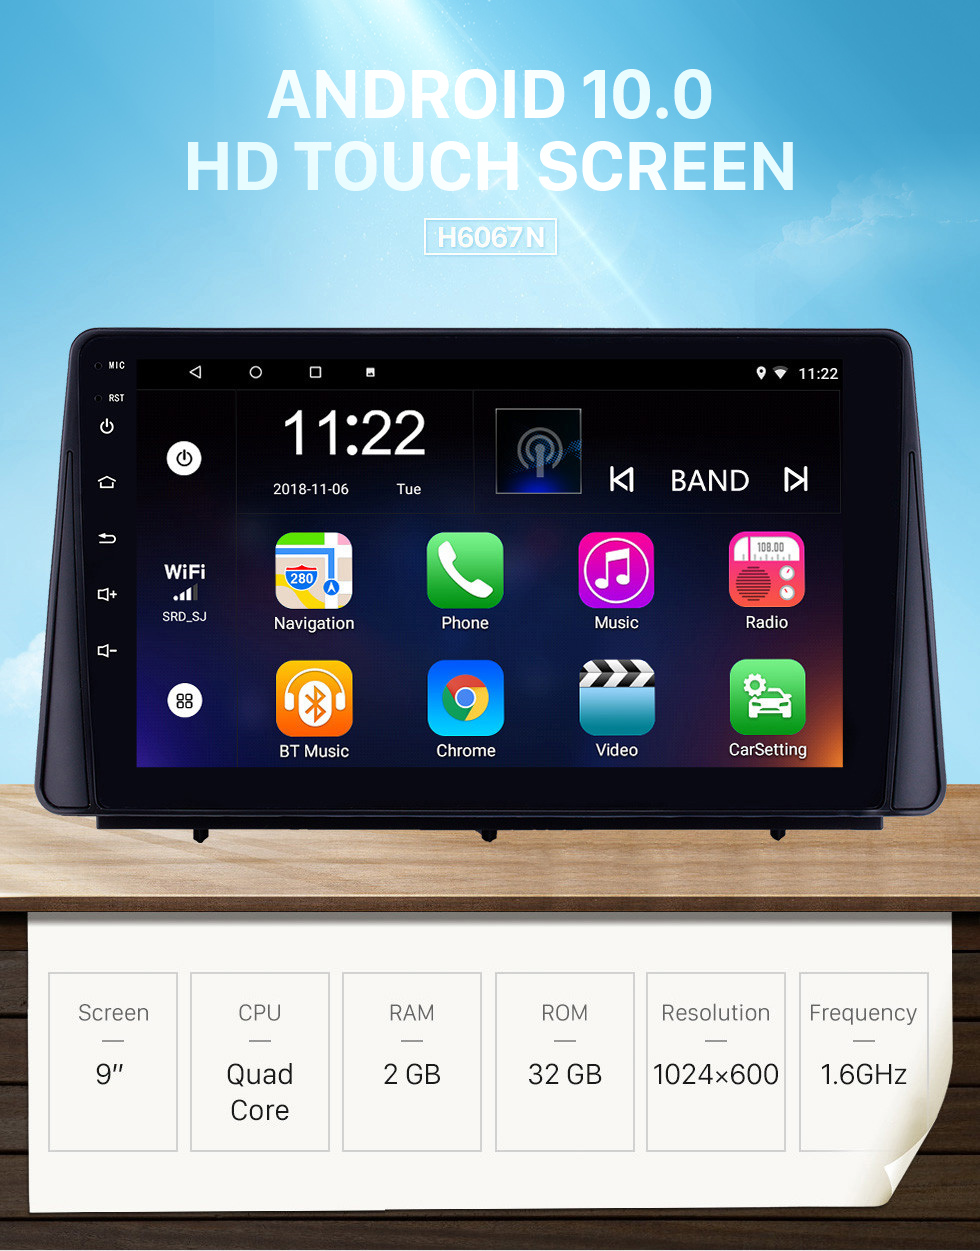 Seicane HD Touchscreen 9 inch Android 10.0 GPS Navigation Radio for 2019 Ford Focus with Bluetooth AUX Music support DVR Carplay Steering Wheel Control